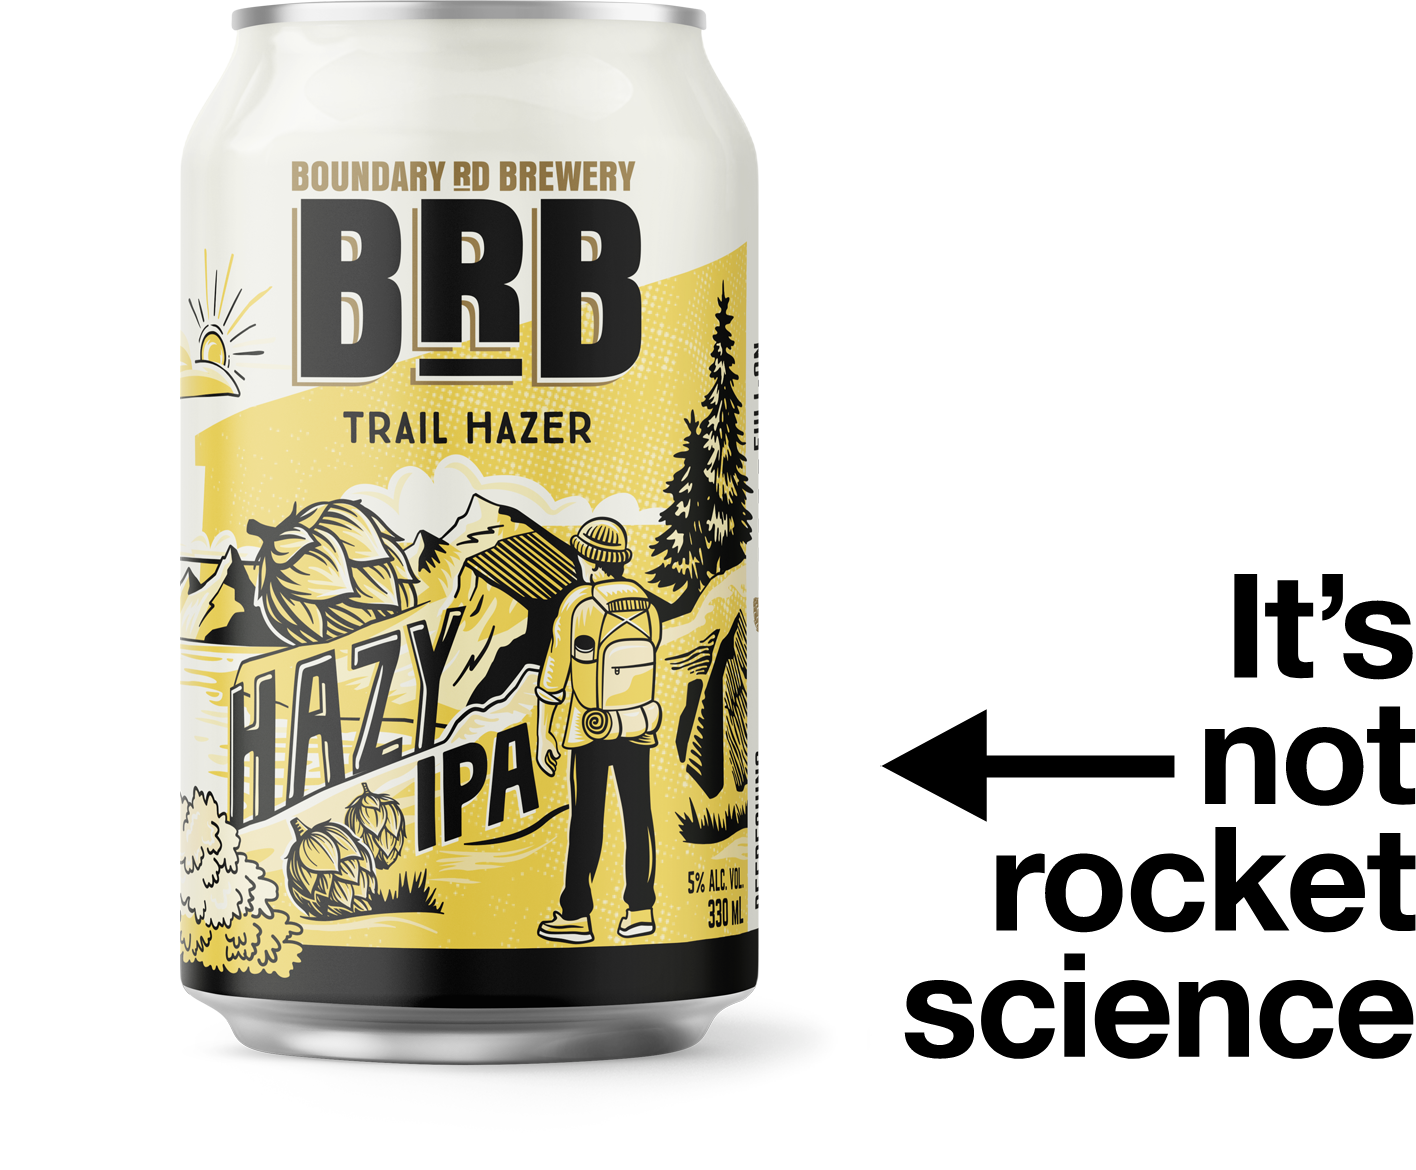 A can of the Trail Hazer Hazy IPA beer. Text reads: it's not rocker science